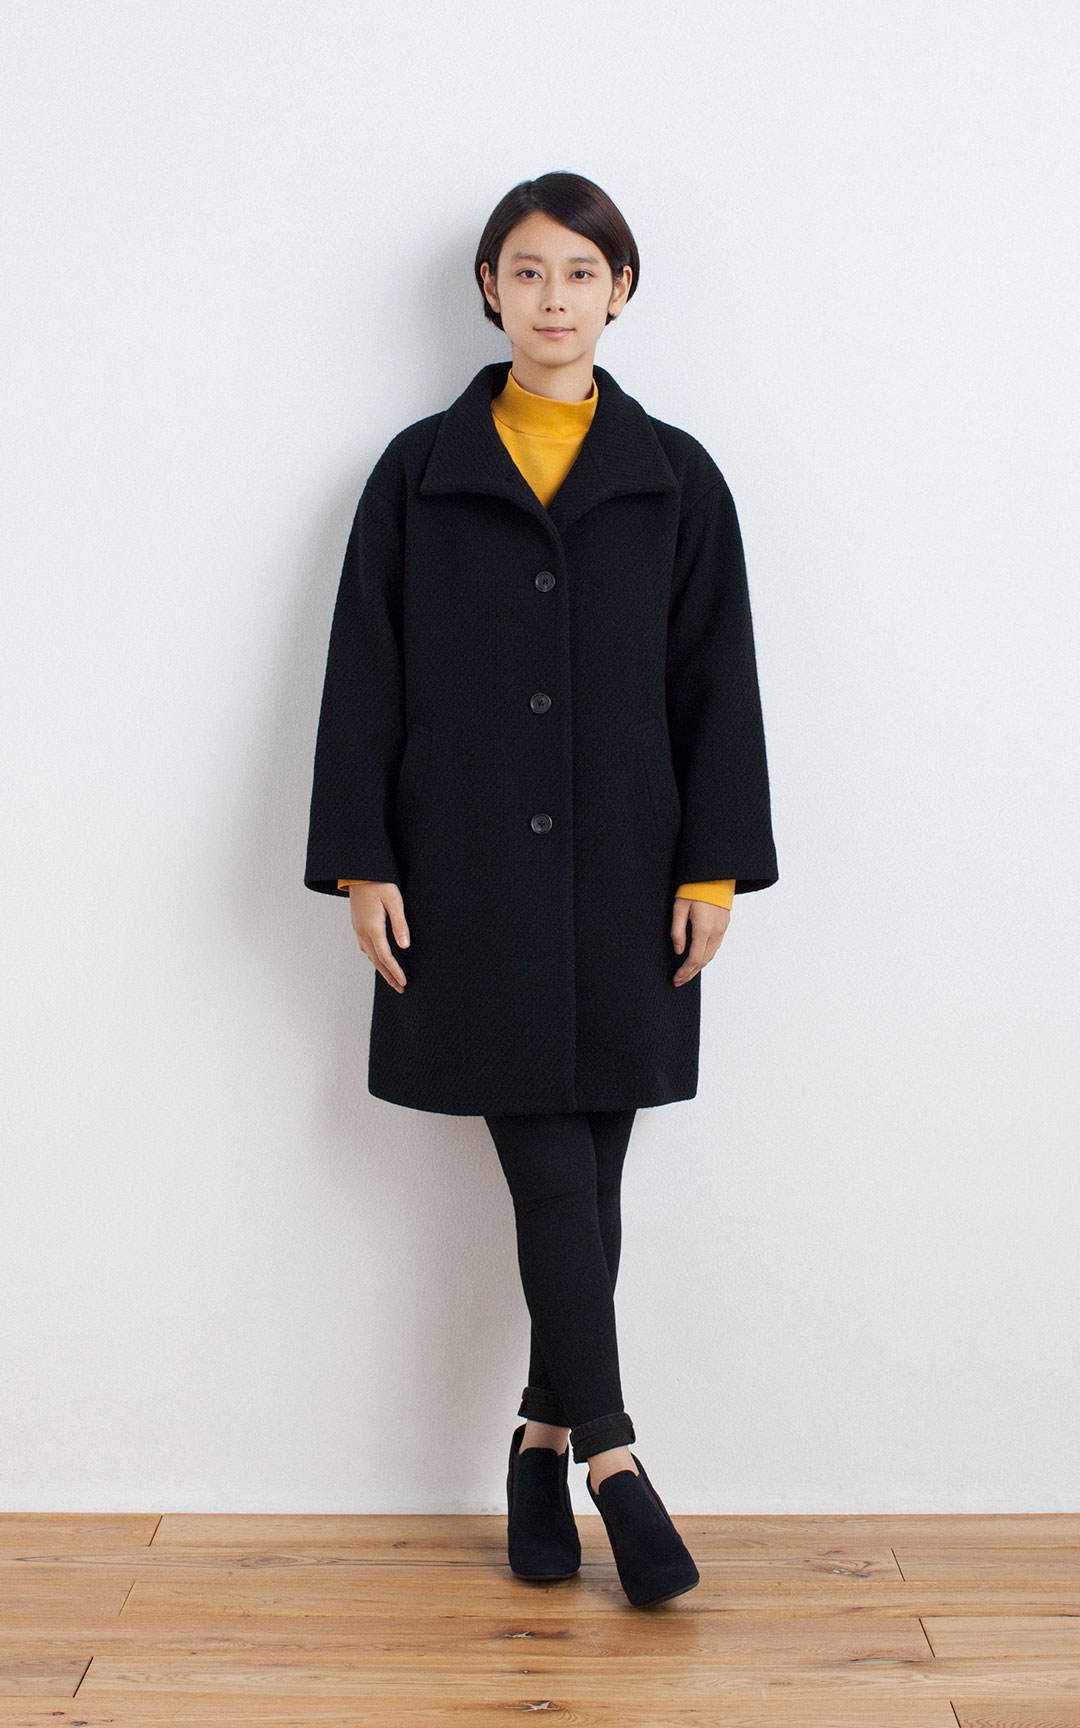 Muji Duffle Coat | Fashion Women's Coat 2017